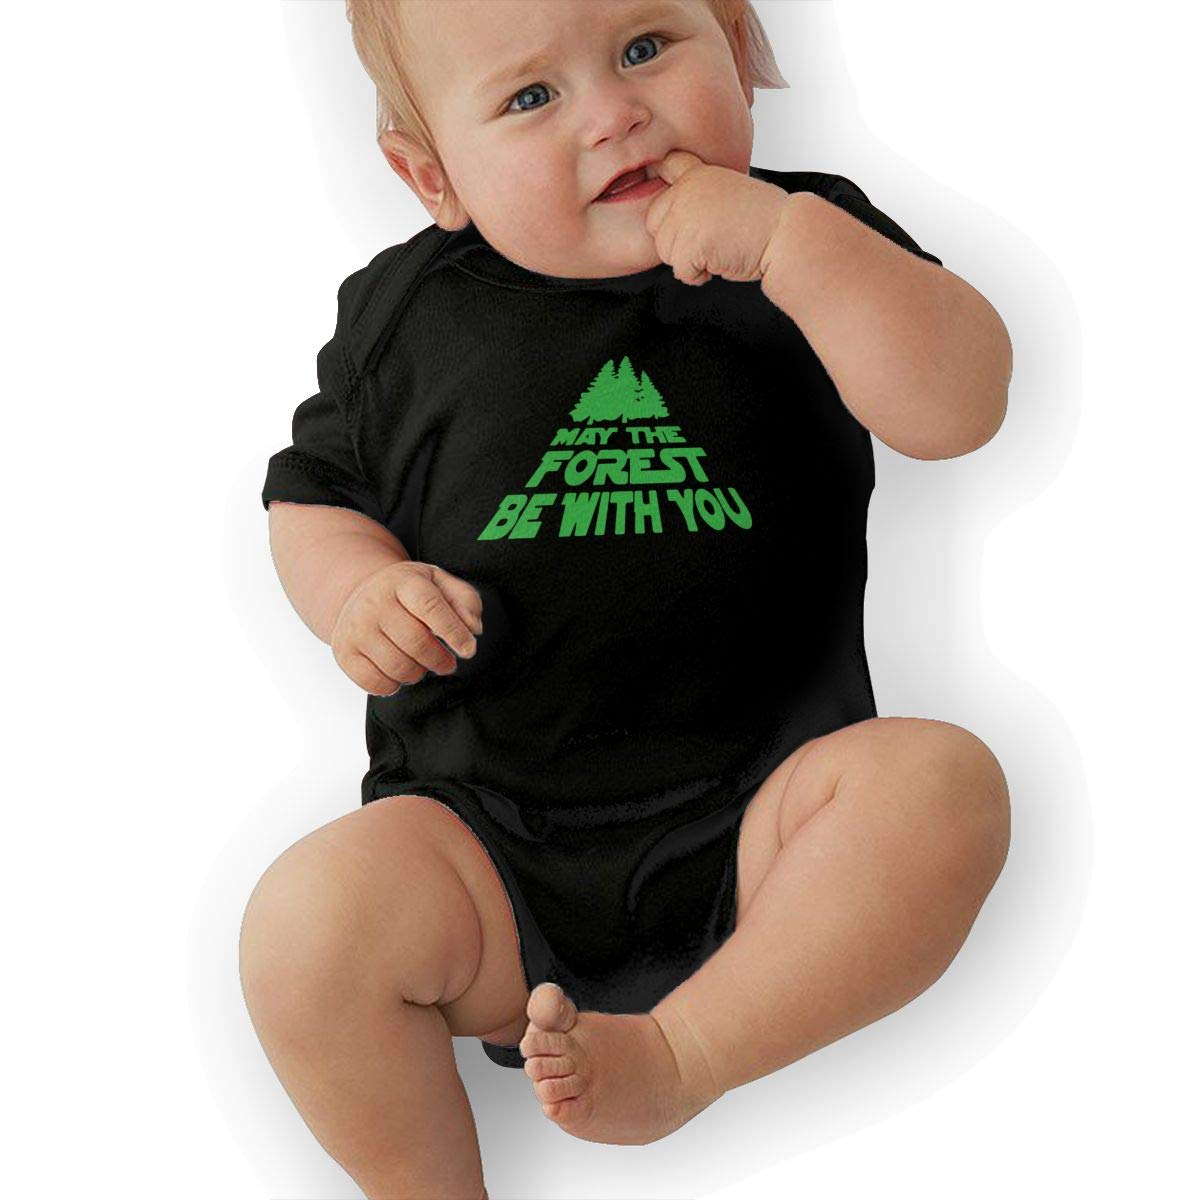 Suit 6-24 Months TAOHJS97 Newborn May The Forest Be with You 2 Short Sleeve Climbing Clothes Playsuit